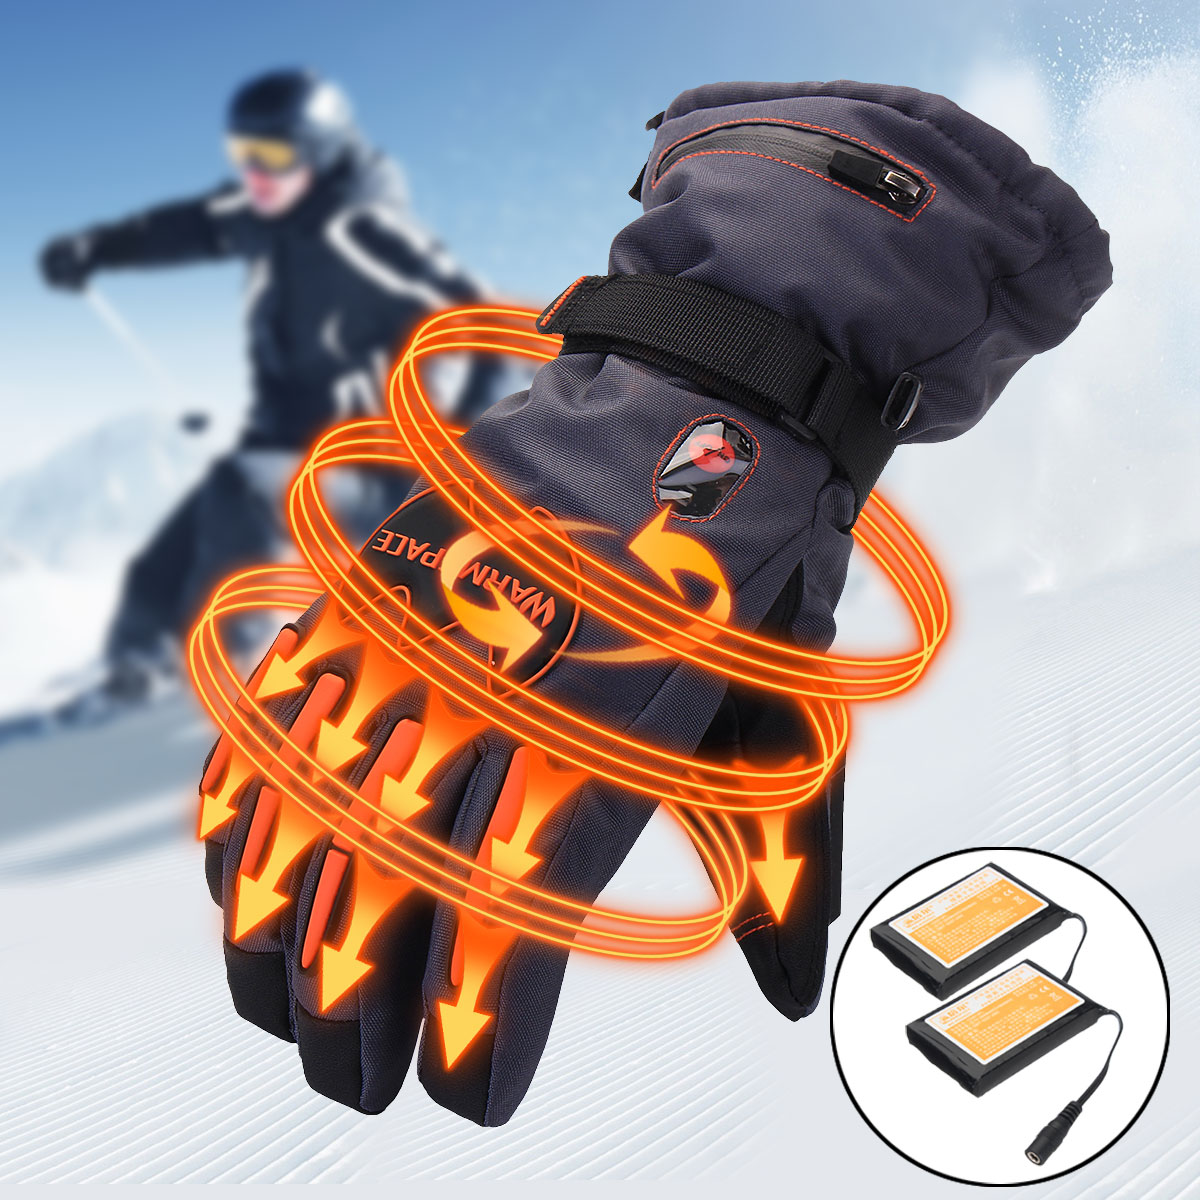 5600mAh Rechargeable Battery Electric Heated Hands Motorcycle Gloves Winter Hands Warmer Outdoor Skiing Protective Gear Gloves